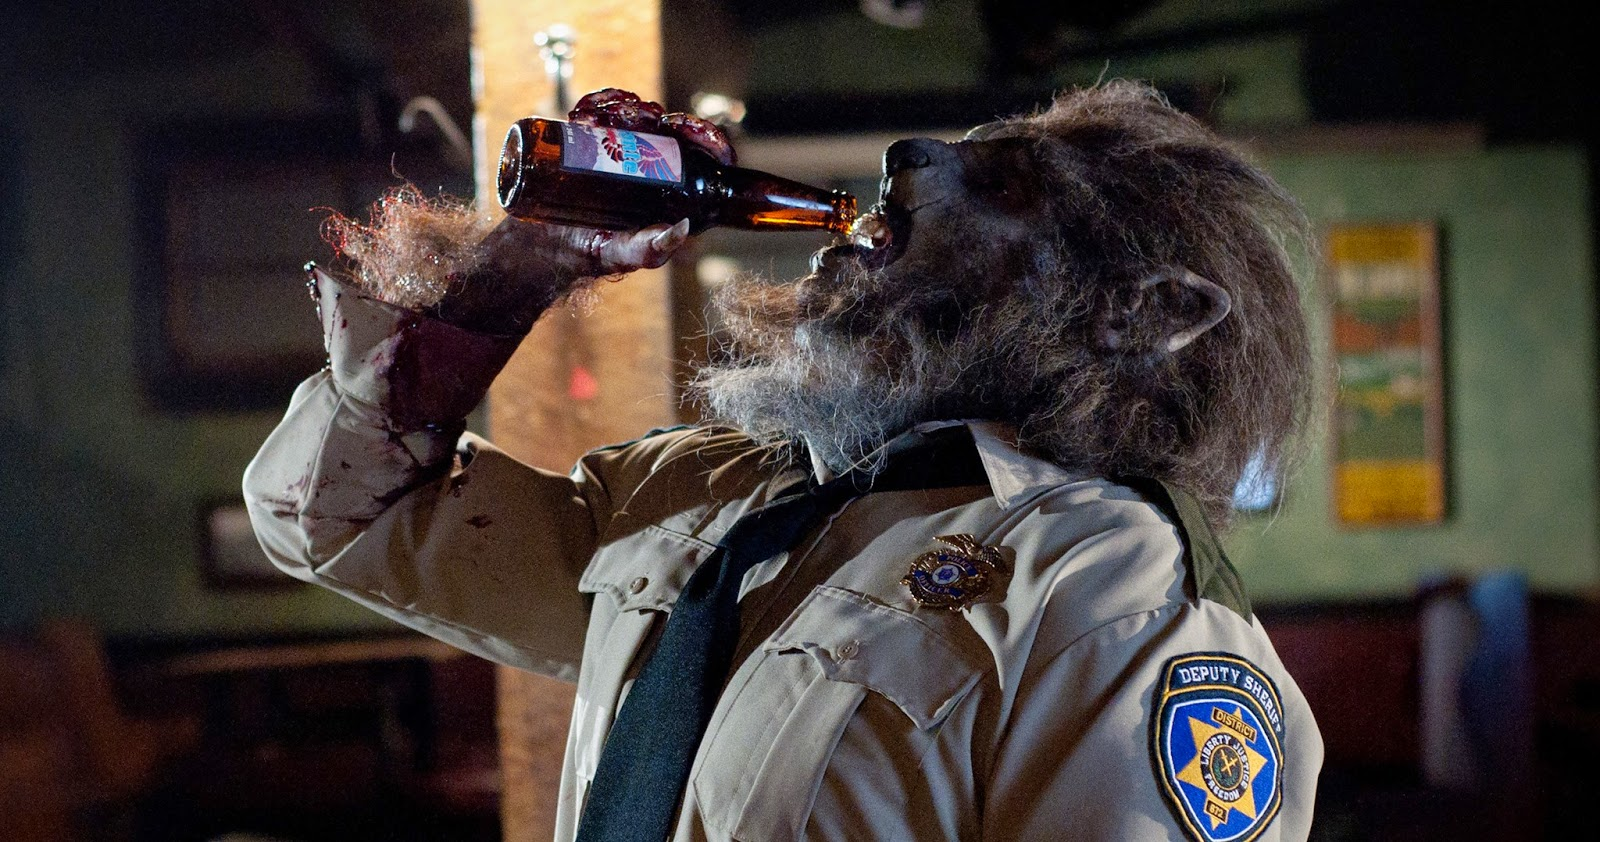 wolfcop picture